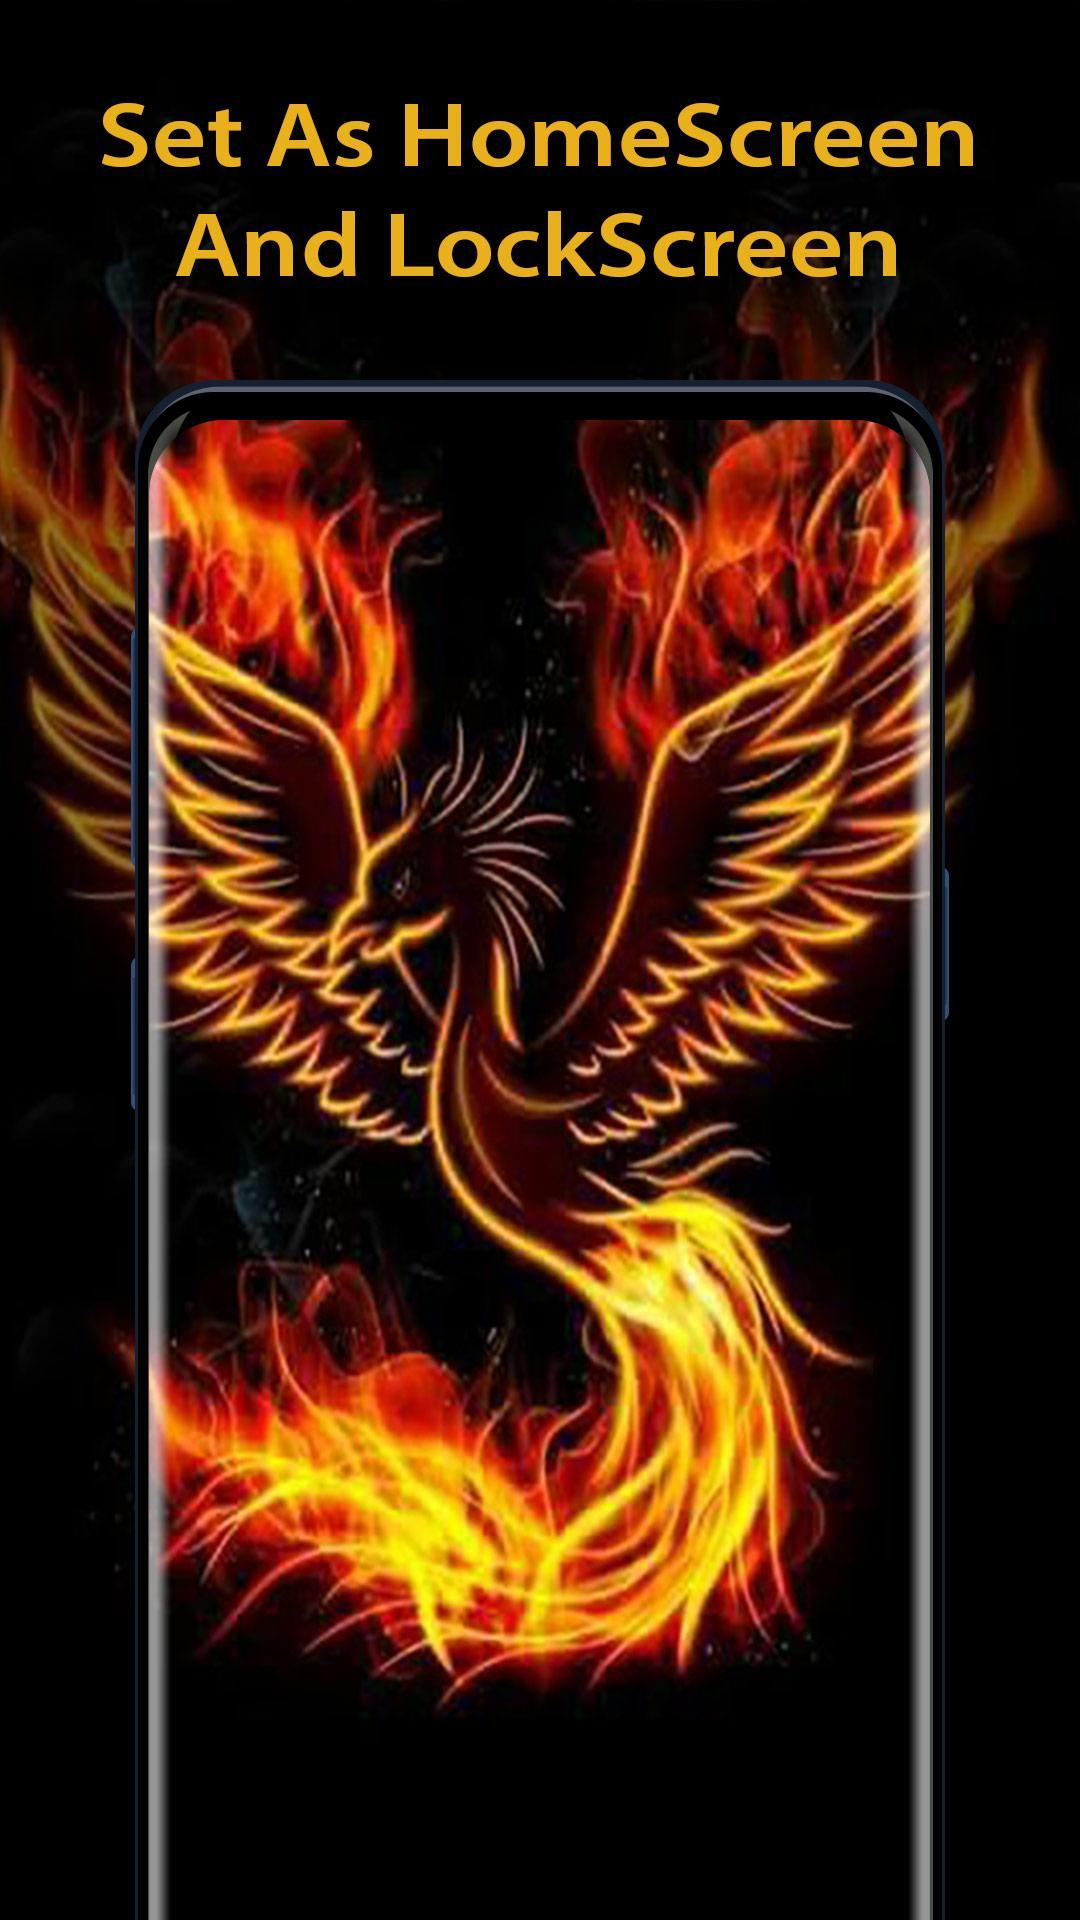 Hd Phoenix Wallpaper 4k Handpicked Background For Android